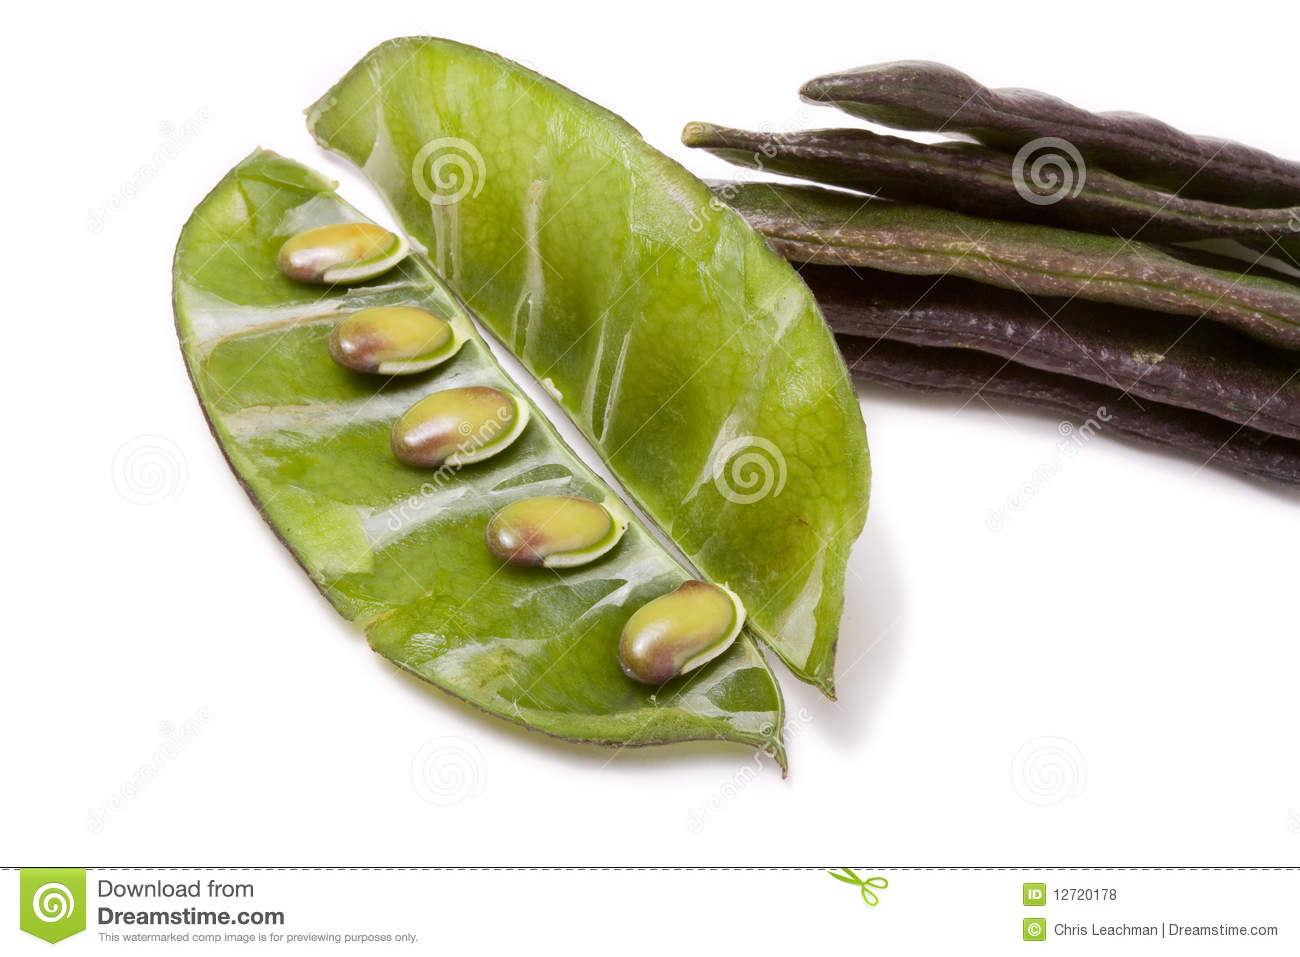 Egyptian Bean Plant http://www.dreamstime.com/royalty-free-stock-photos-indian-bean-image12720178